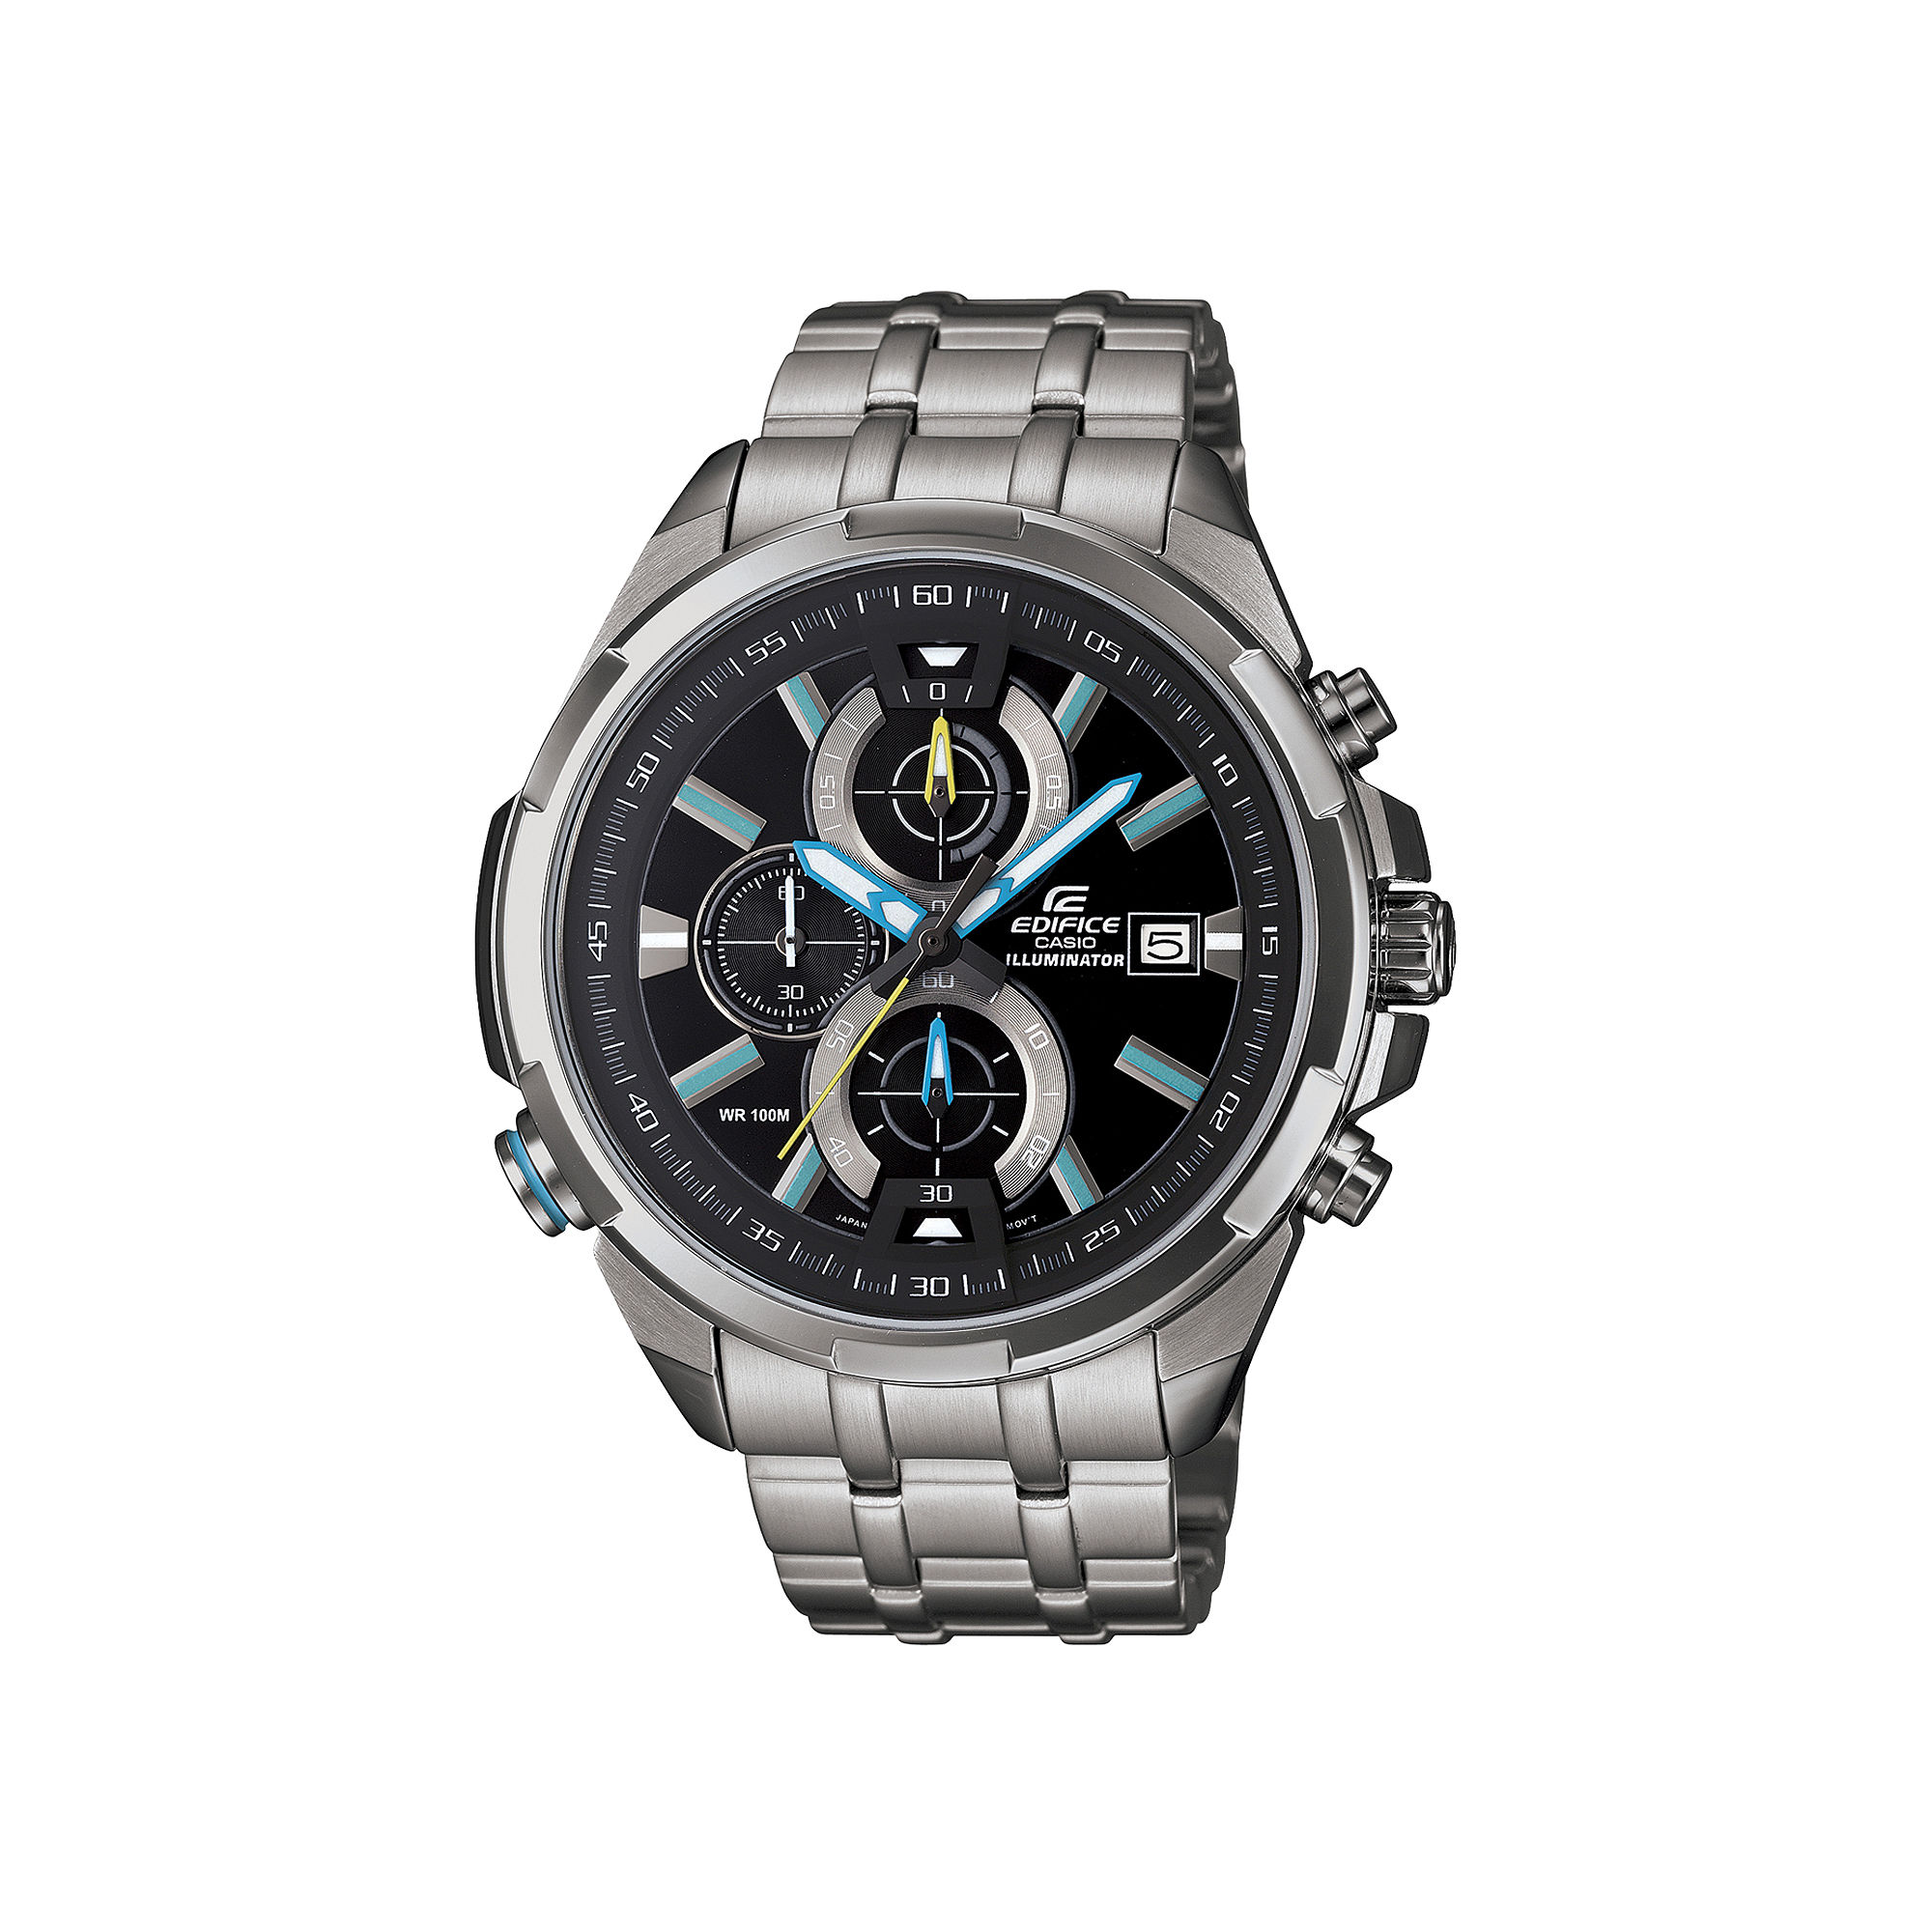 Casio Mens Silver-Tone Multifunction Chronograph Watch EFR536D-1A2V